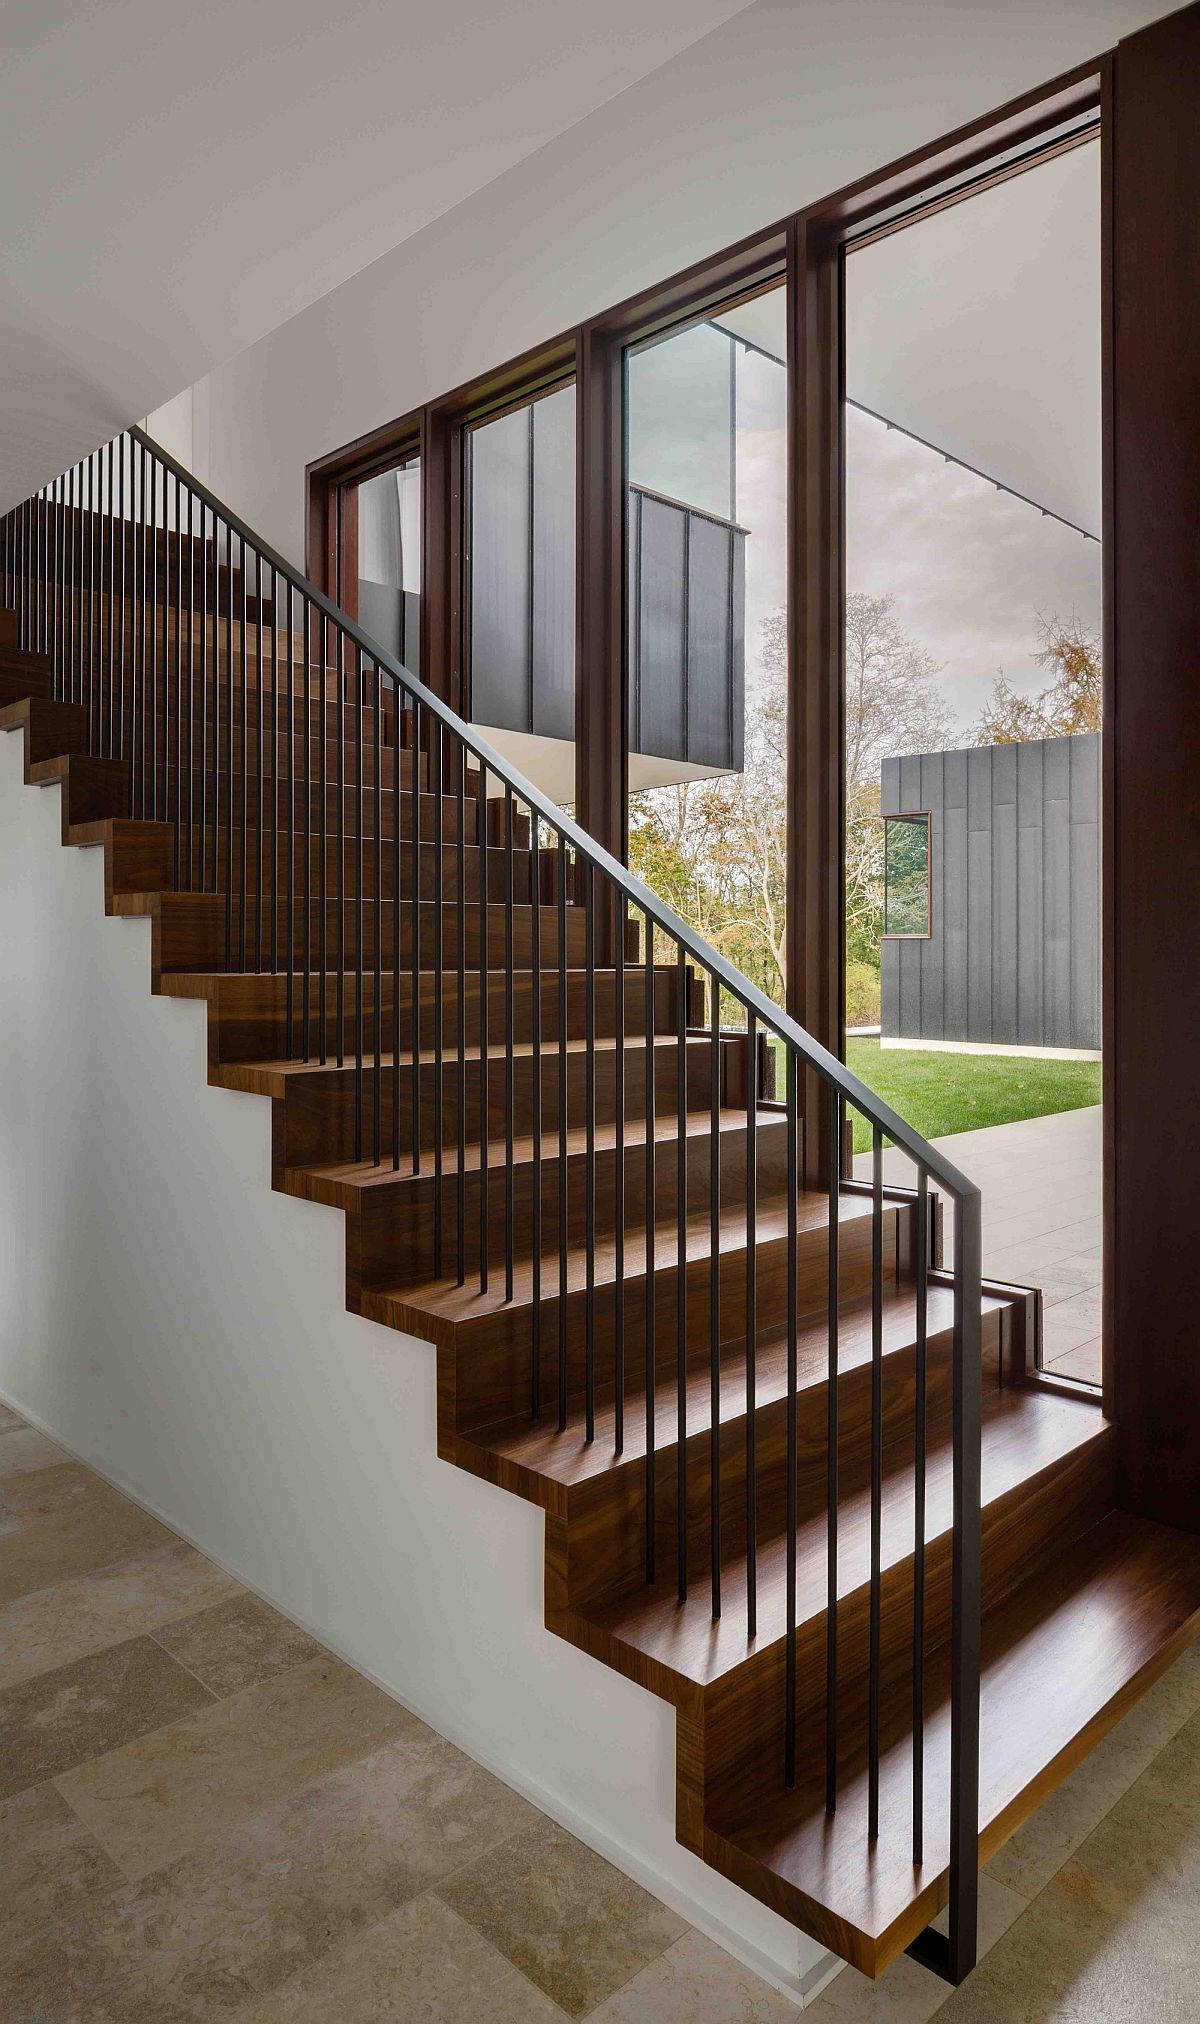 Simple wooden staircase with large glass doors